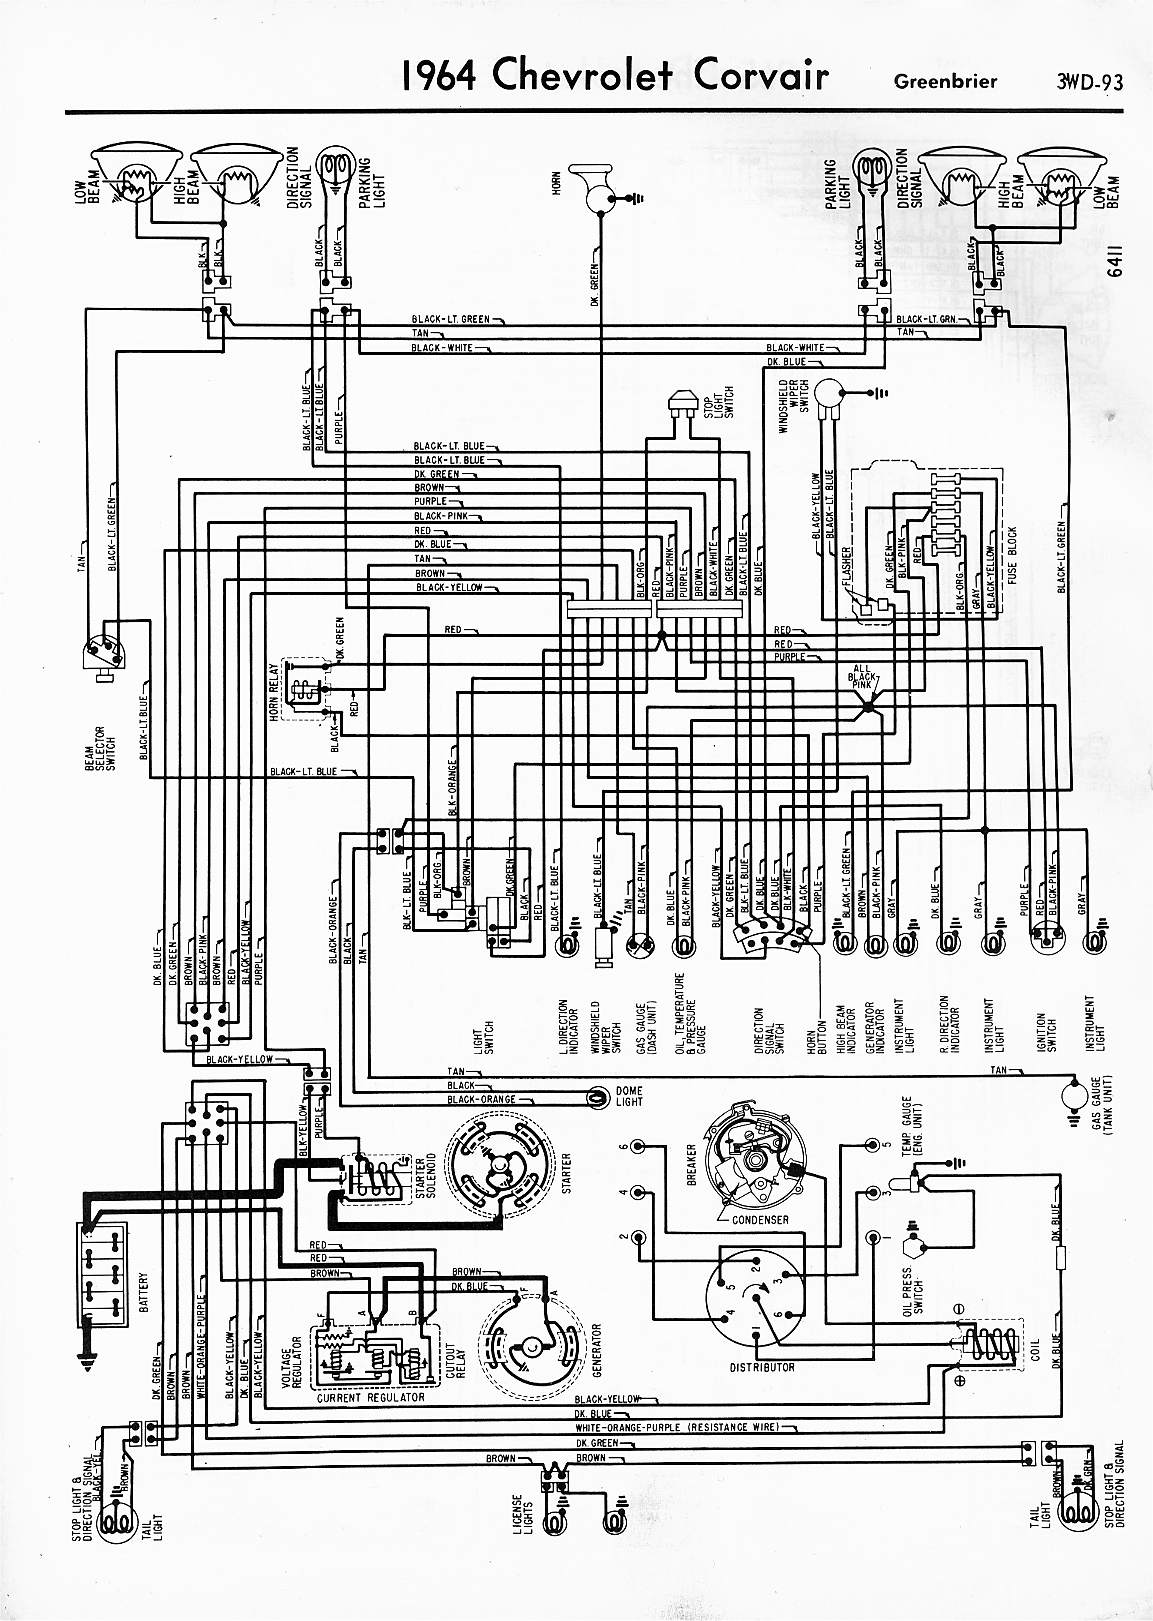 Chevy Hei Distributor Wiring Diagram besides 1973 1979 Ford Truck Wiring Diagrams Schematics Fordification   Best Of F250 Diagram likewise 46754 73 240z Wiring likewise 2008 Charger Fuse Diagram also 302 Omc Wiring Diagram. on 1975 chevy alternator wiring diagram